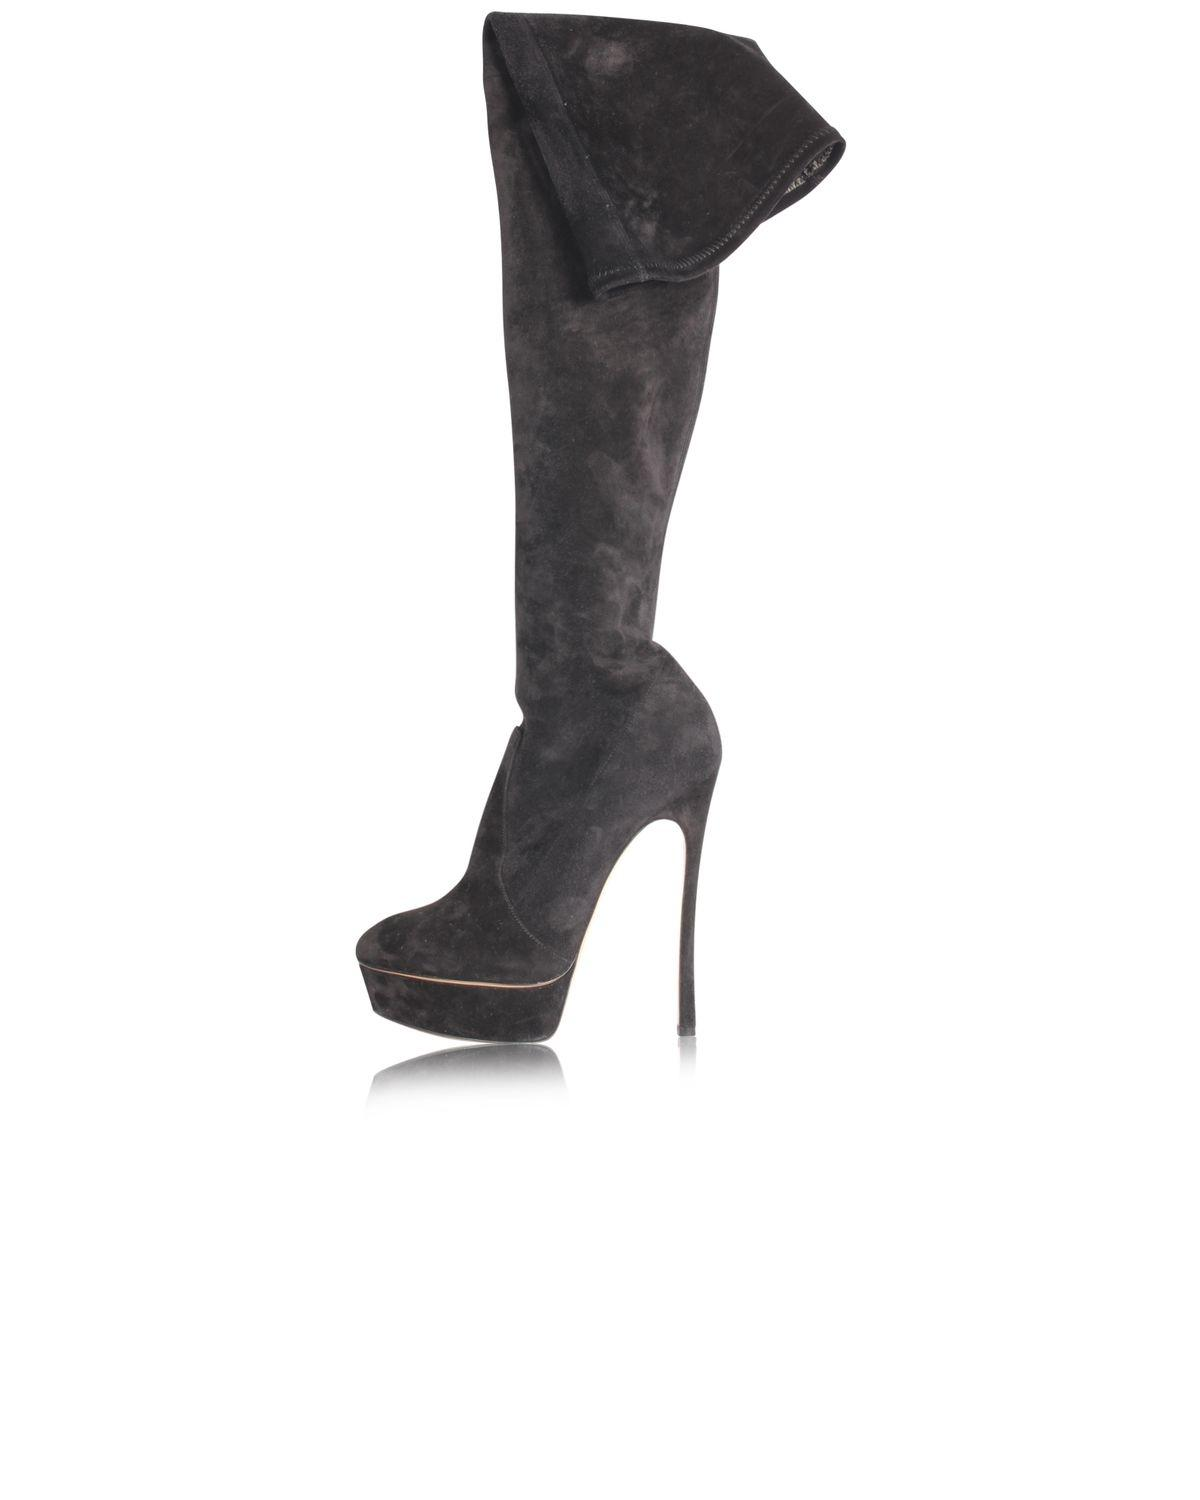 Casadei Black Suede Thigh High Boots/Booties Size EU 38 (Approx. US 8) Regular (M, B)